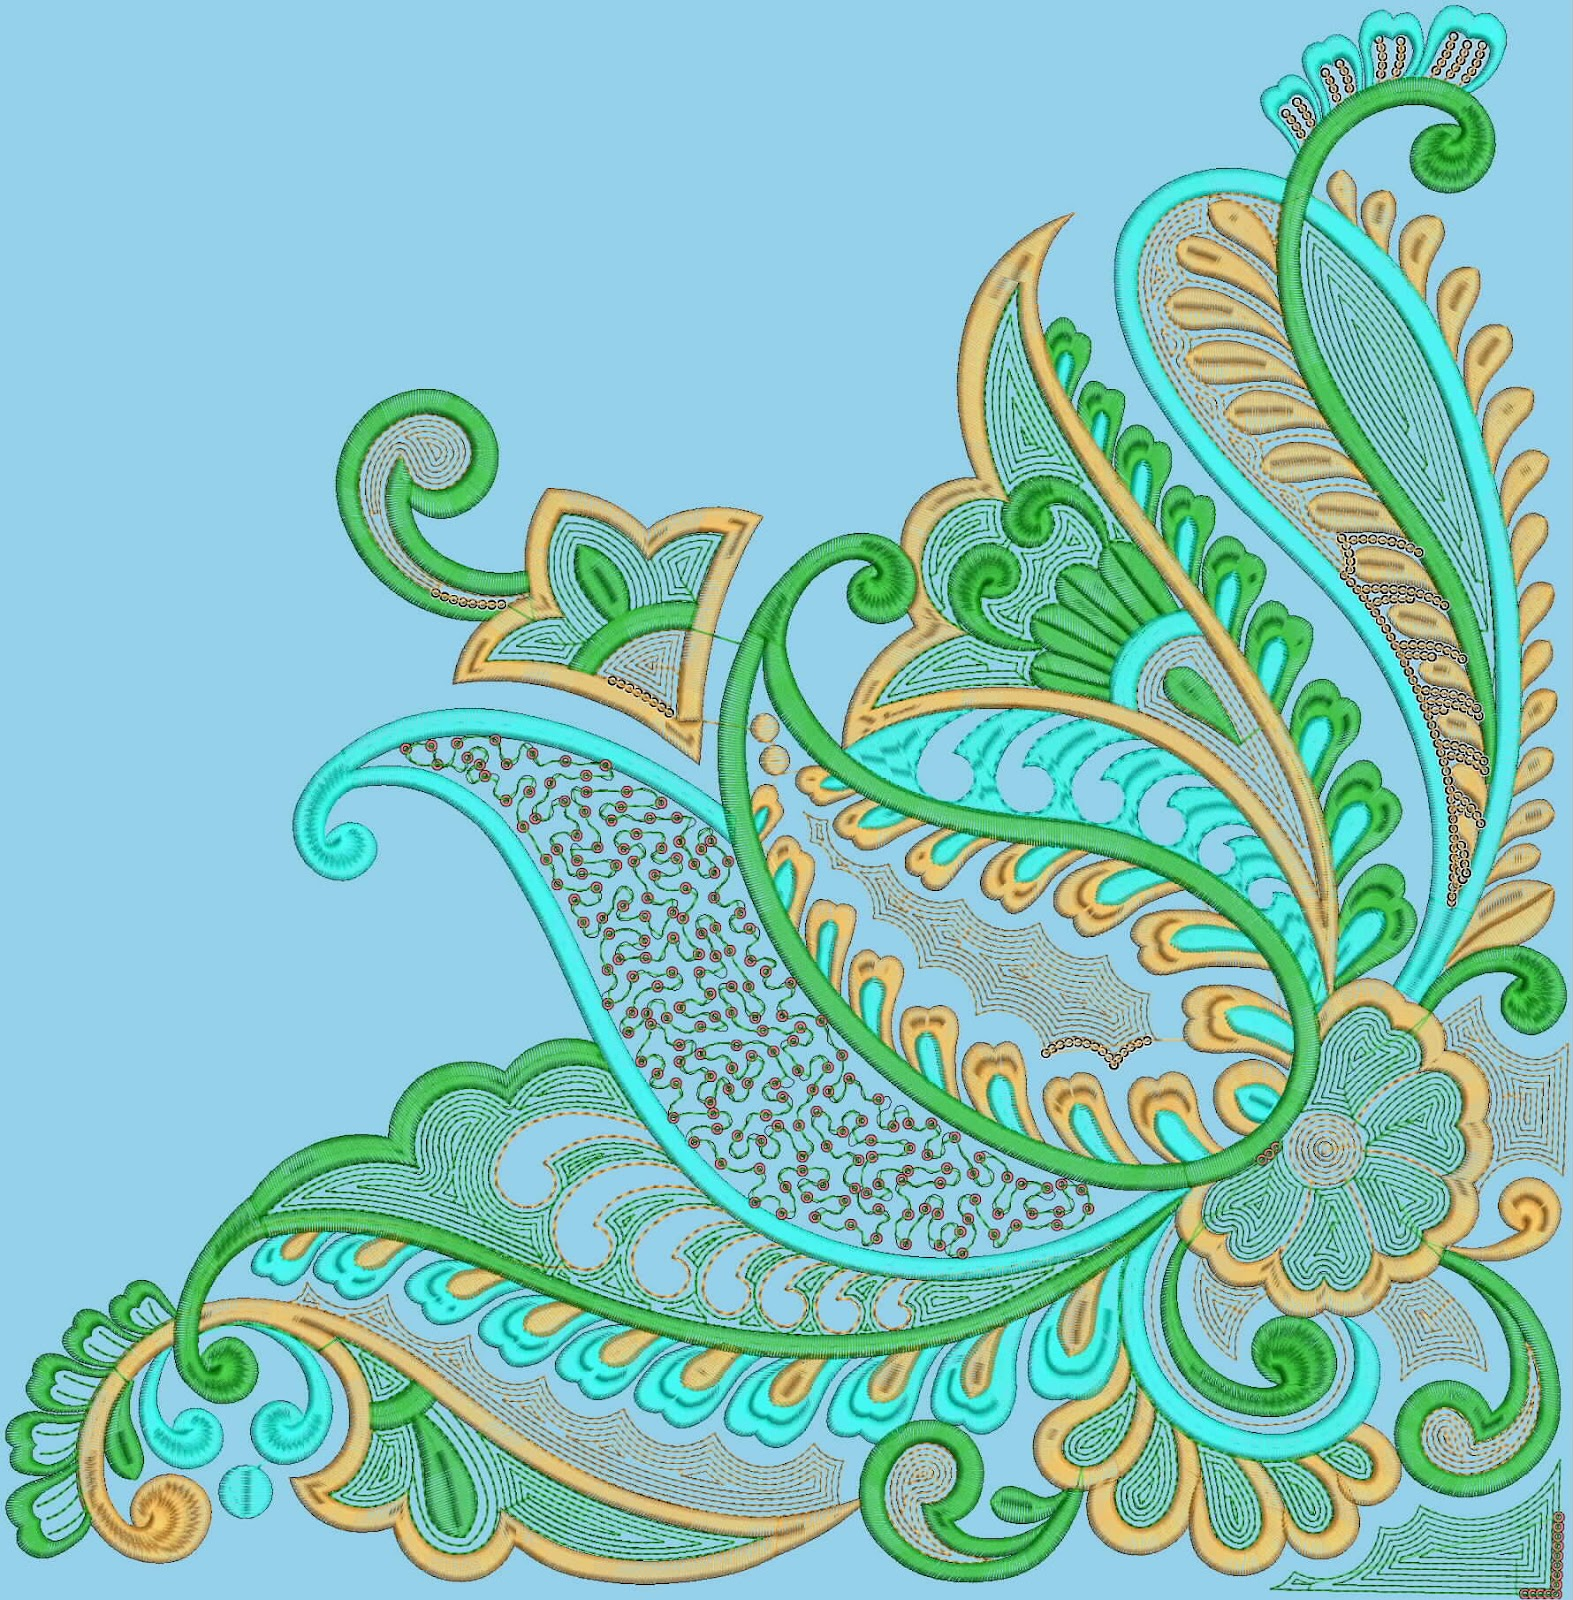 Embdesigntube: Embroidery Designs for Tablecloth